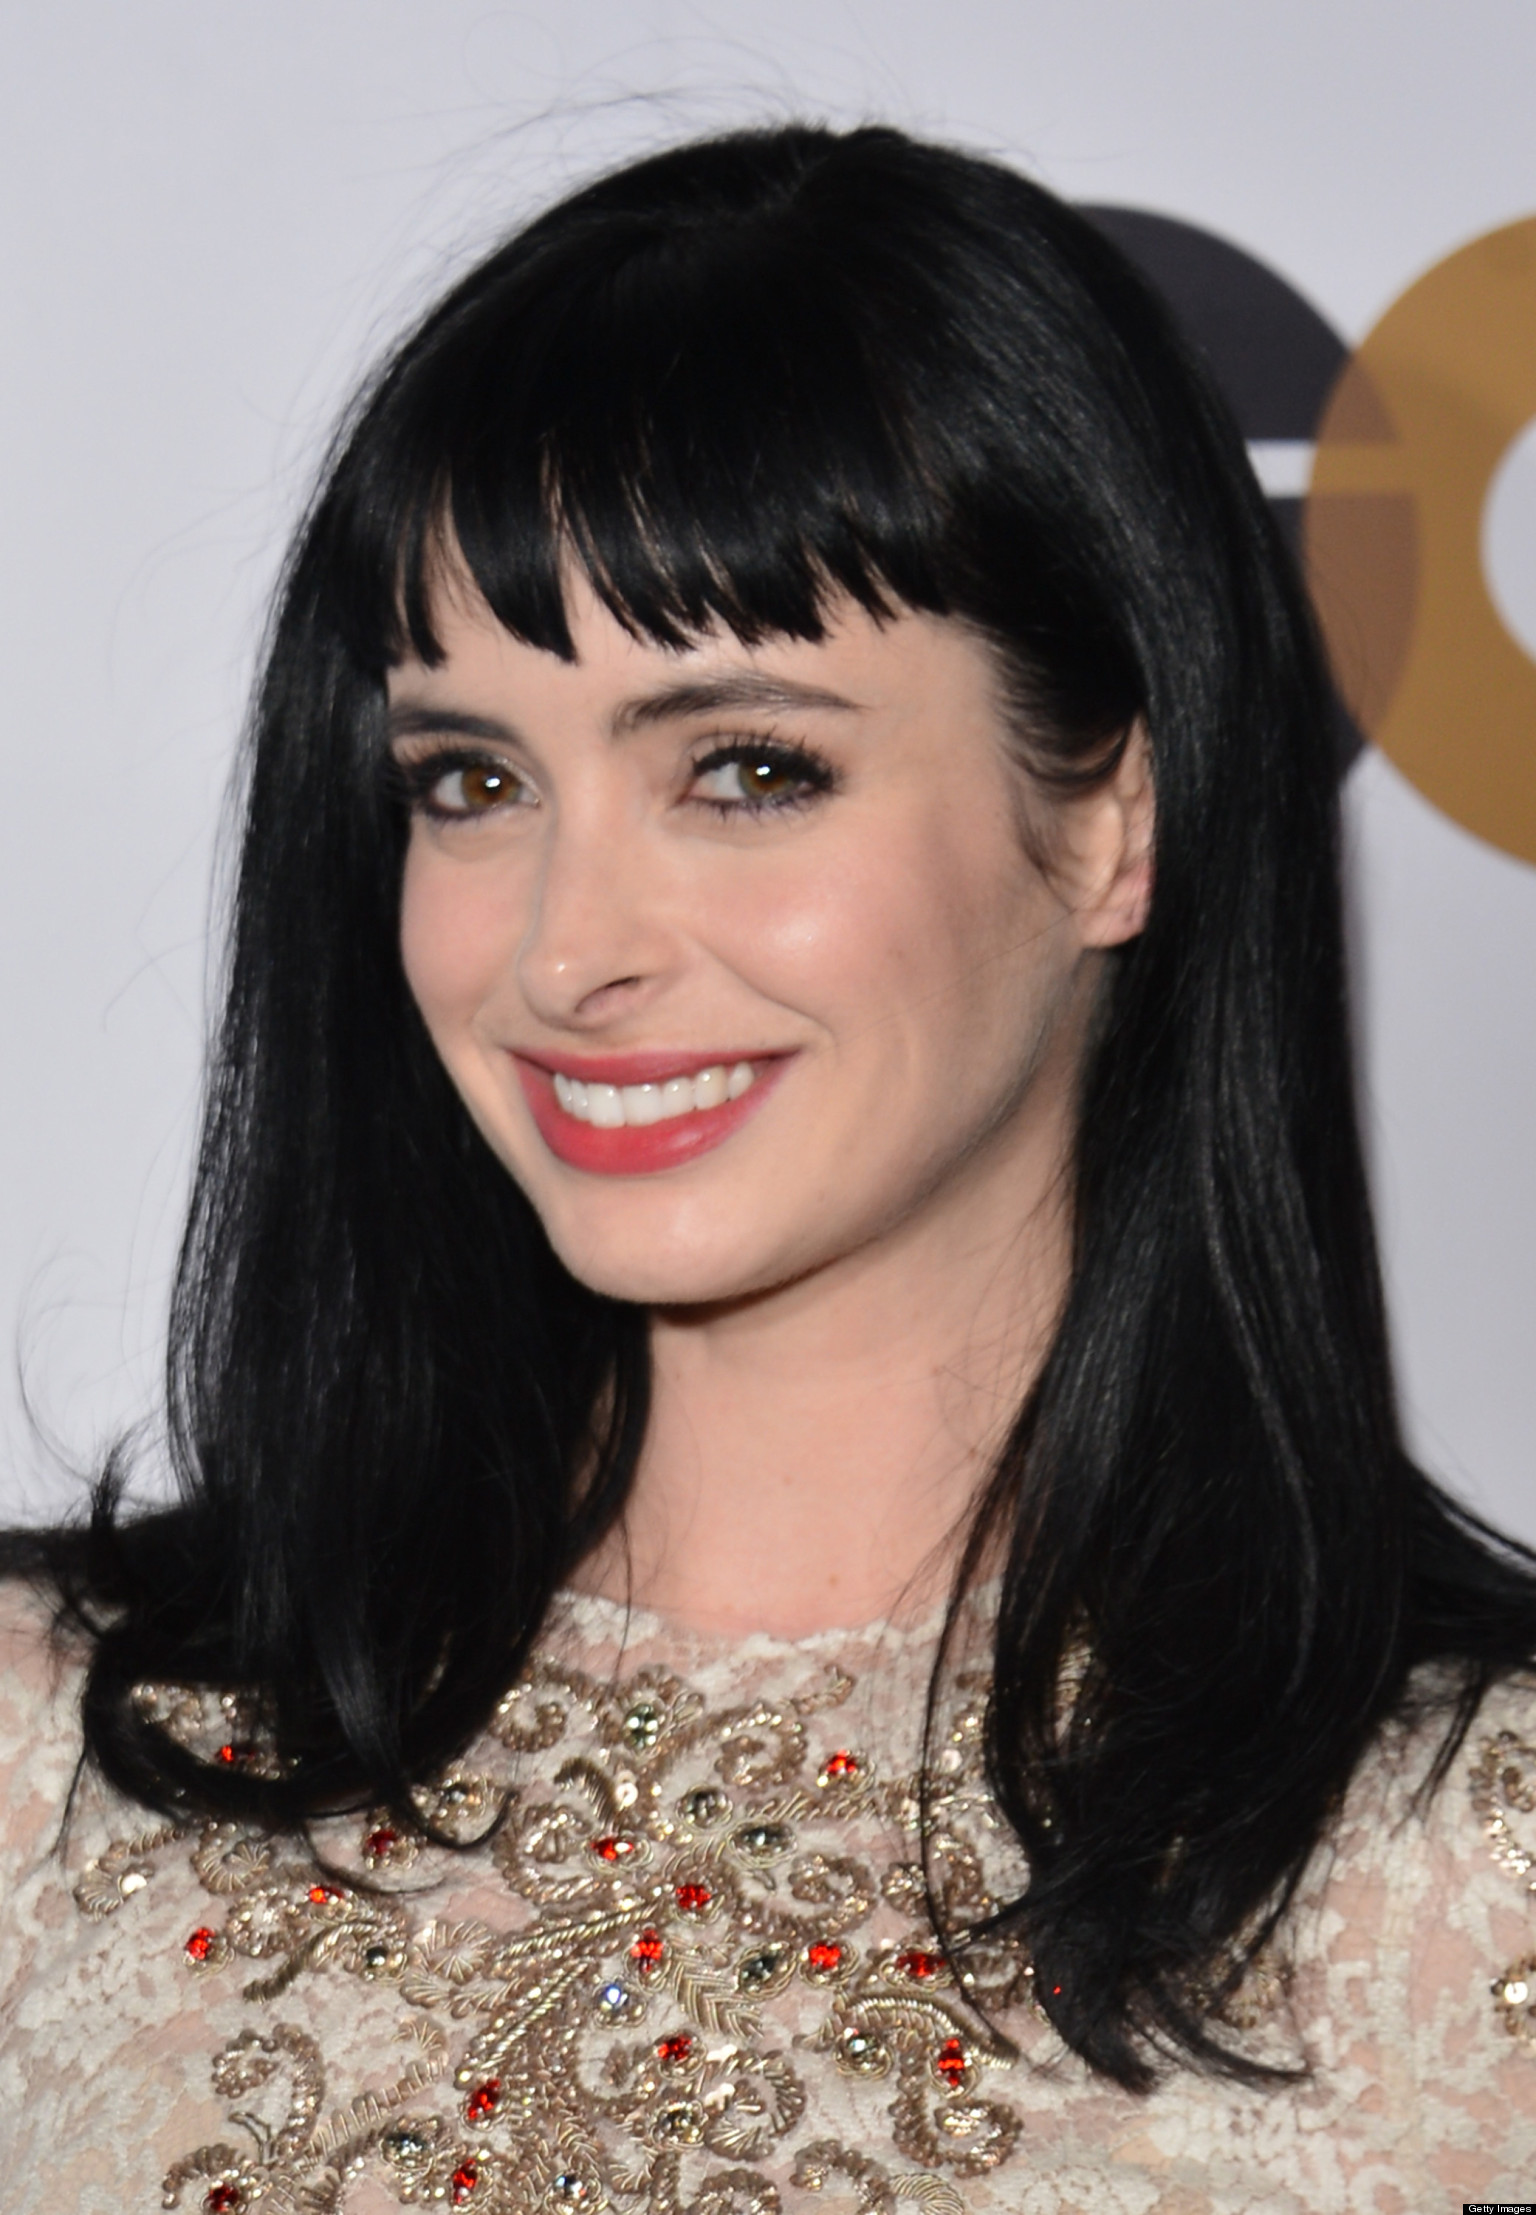 Krysten Ritter In 'Fifty Shades Of Grey'? Will Actress ...